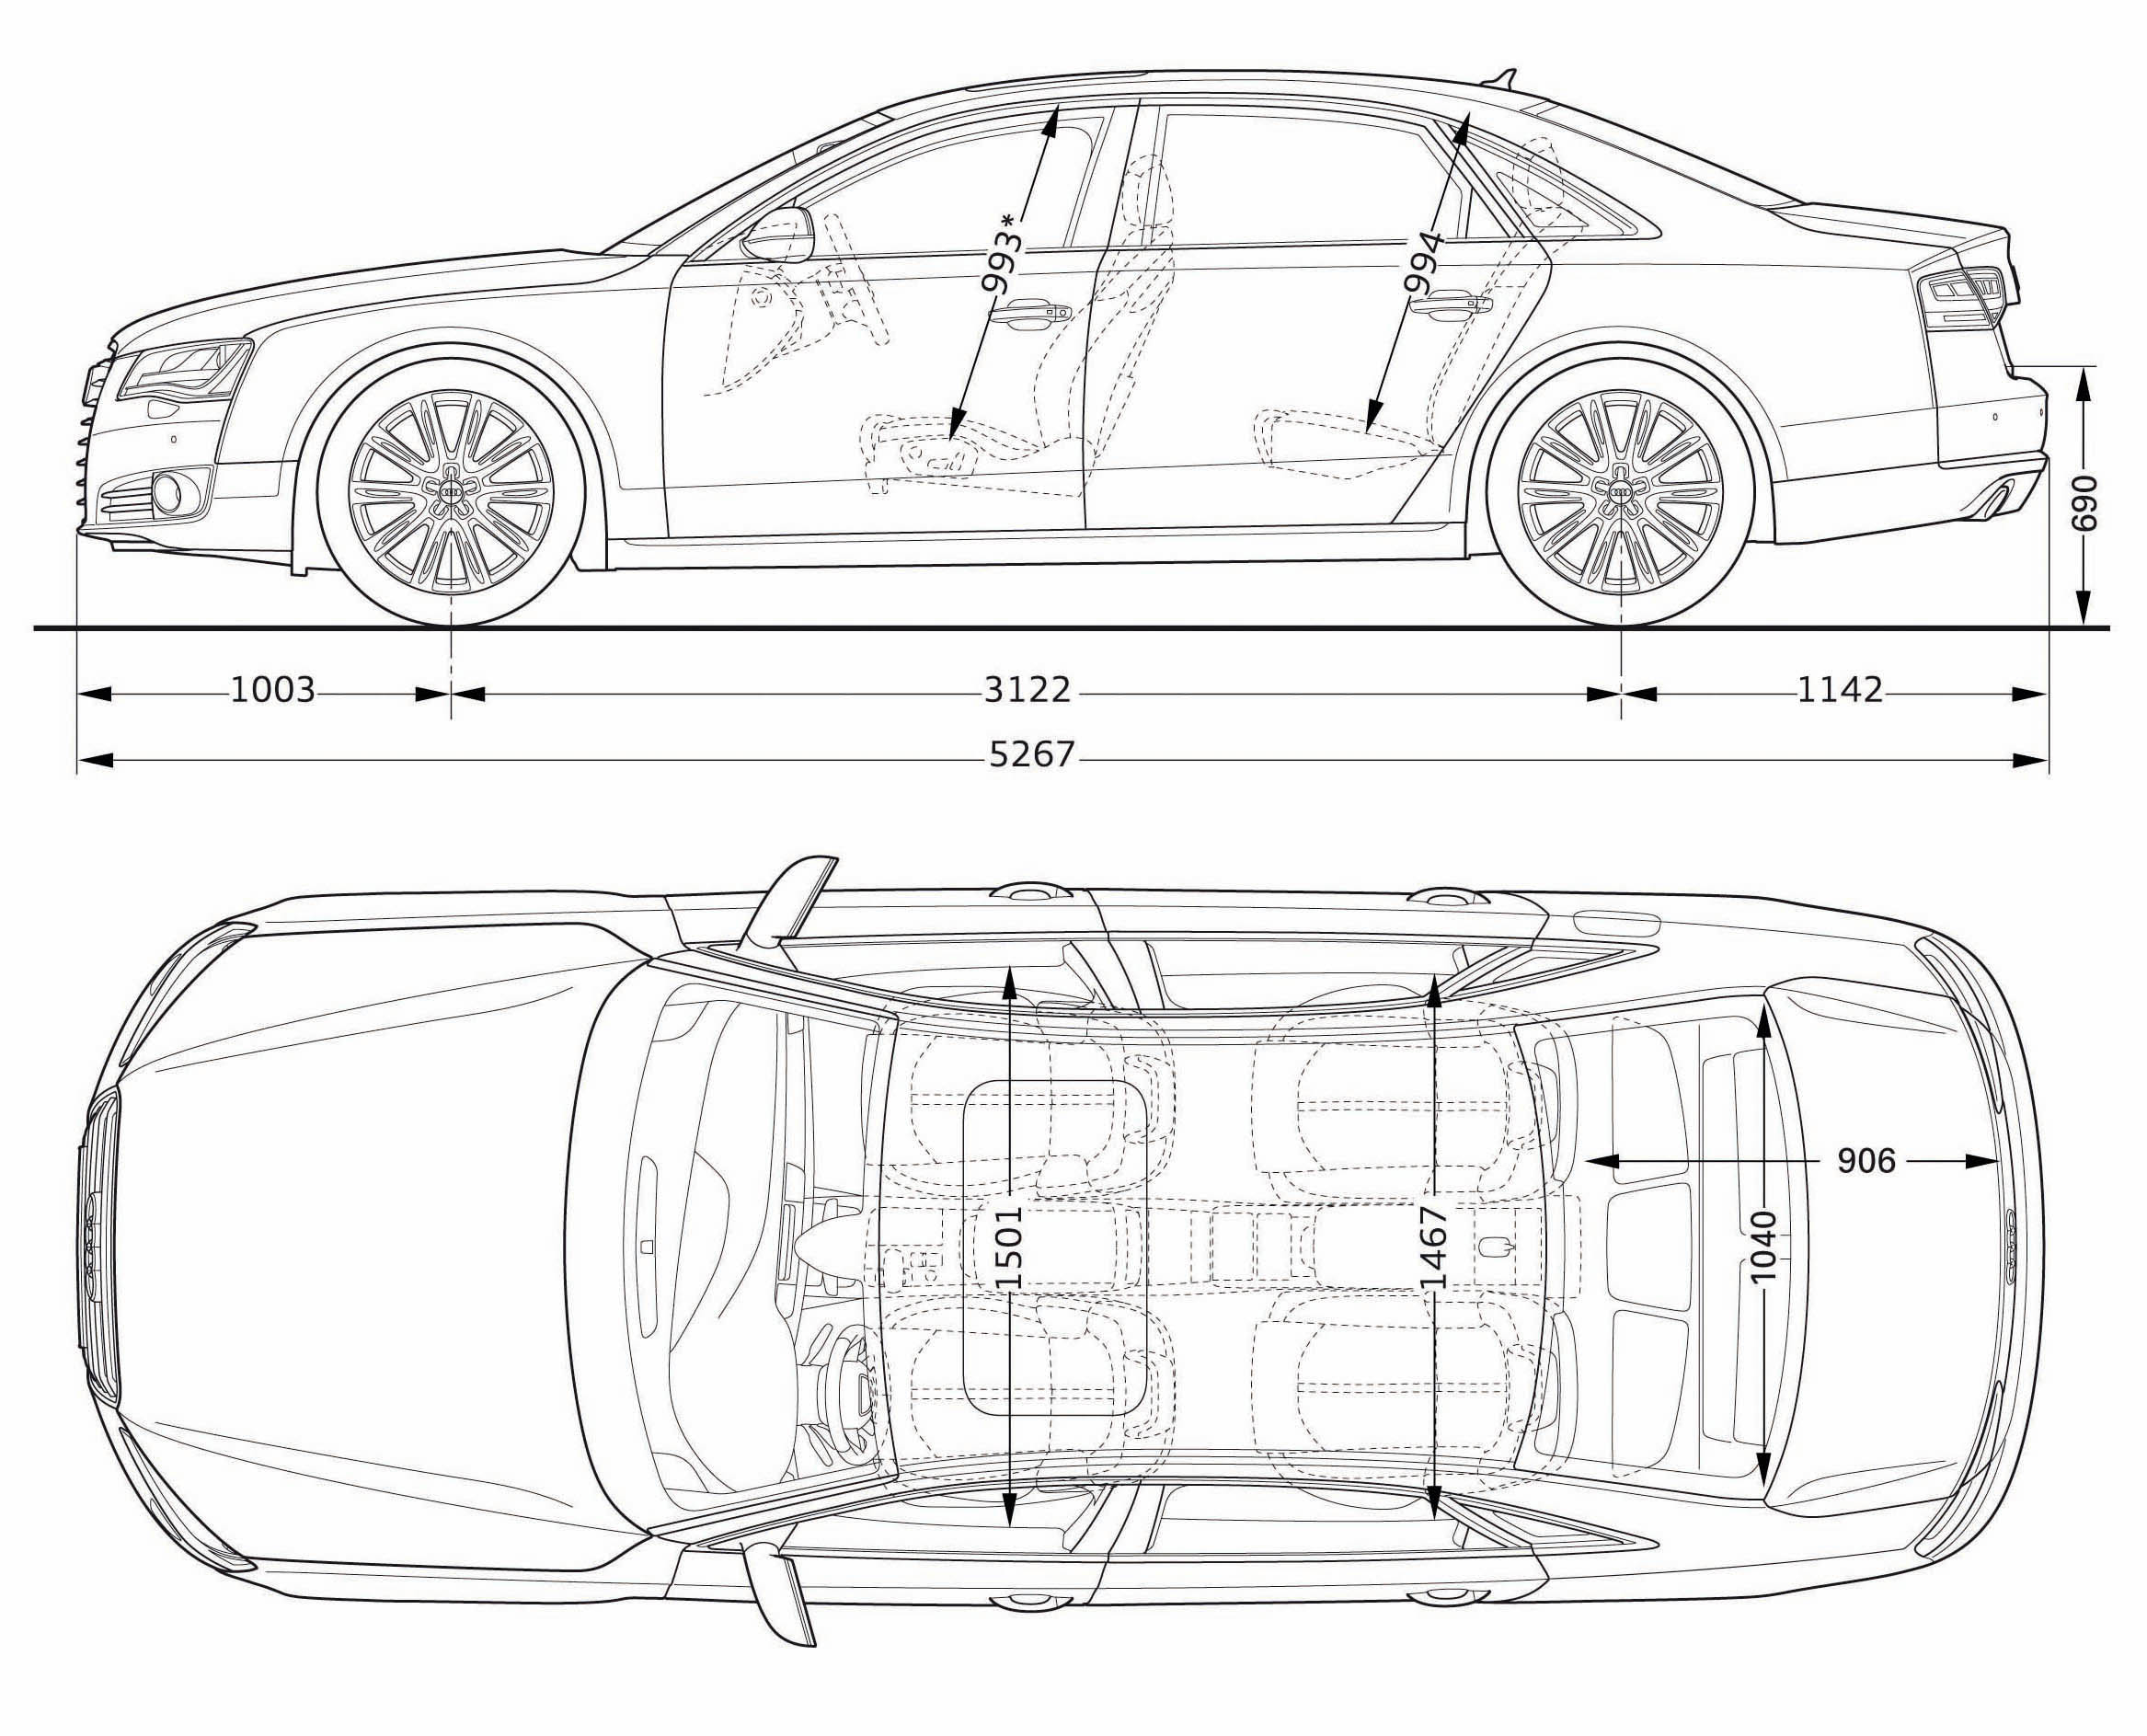 Audi A8l Engine Diagram Trusted Wiring Diagrams V8 2011 A8 Residential Electrical Symbols U2022 Rh Bookmyad Co L